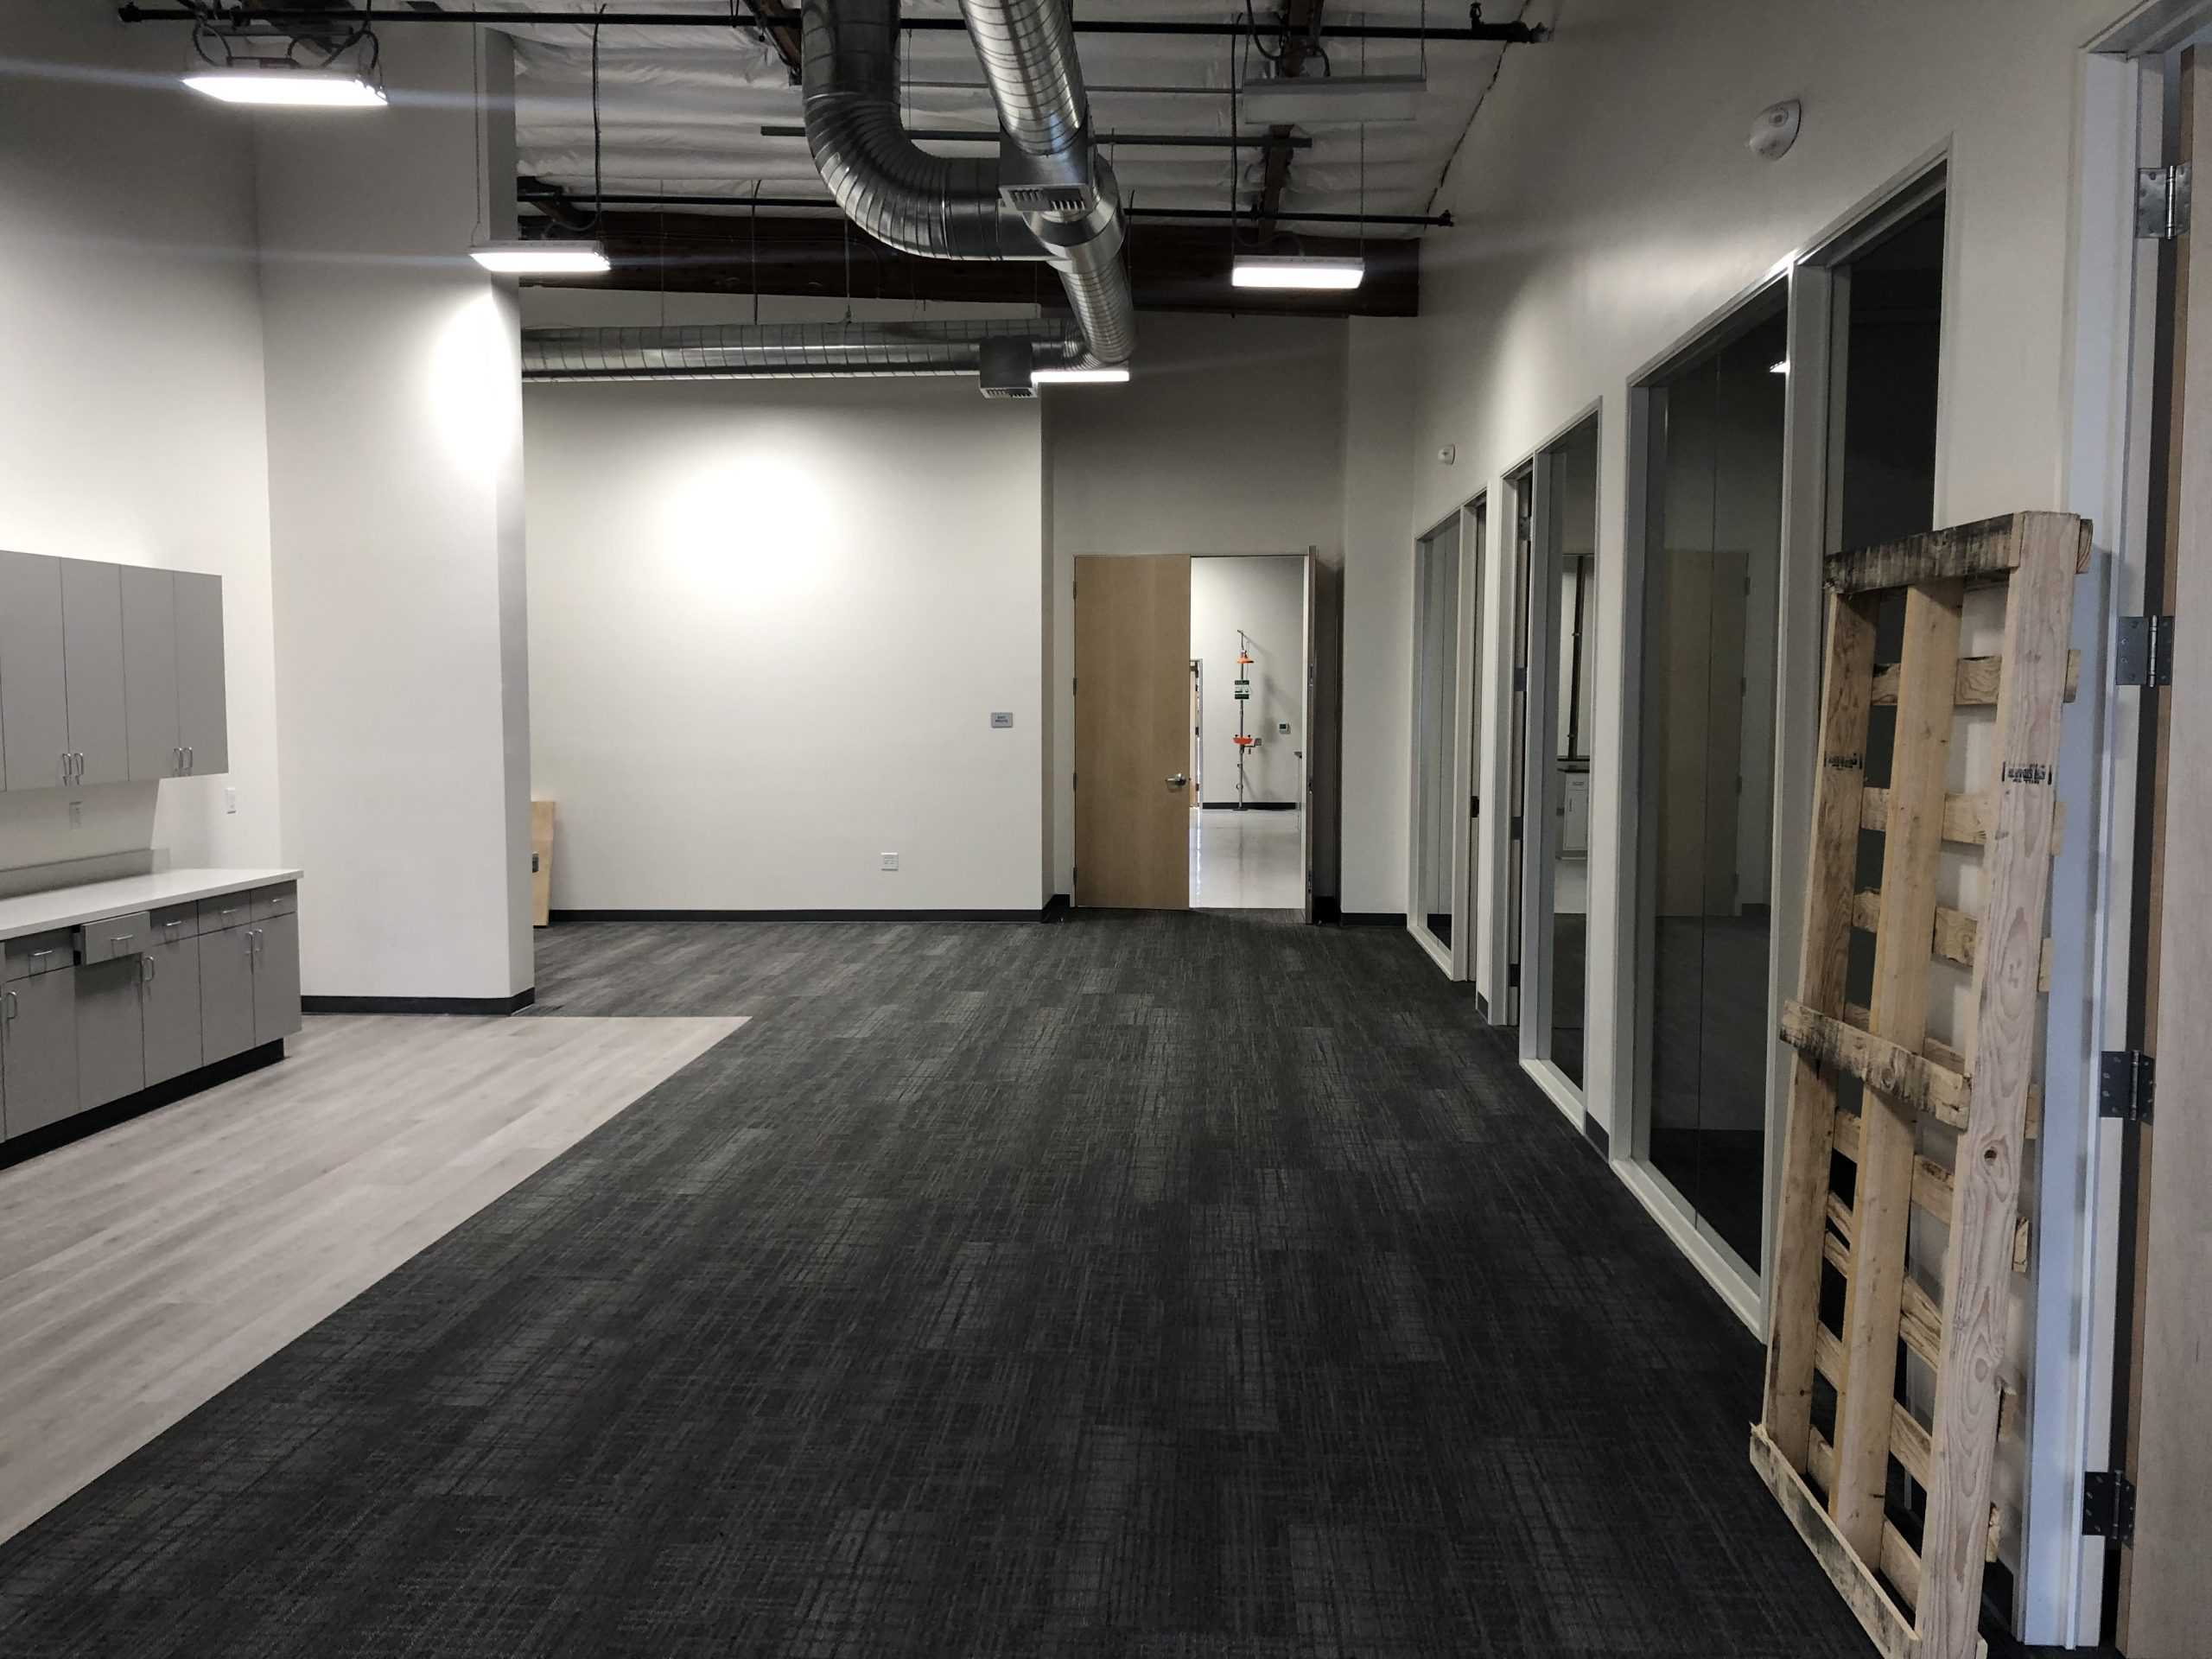 New flooring in new lab